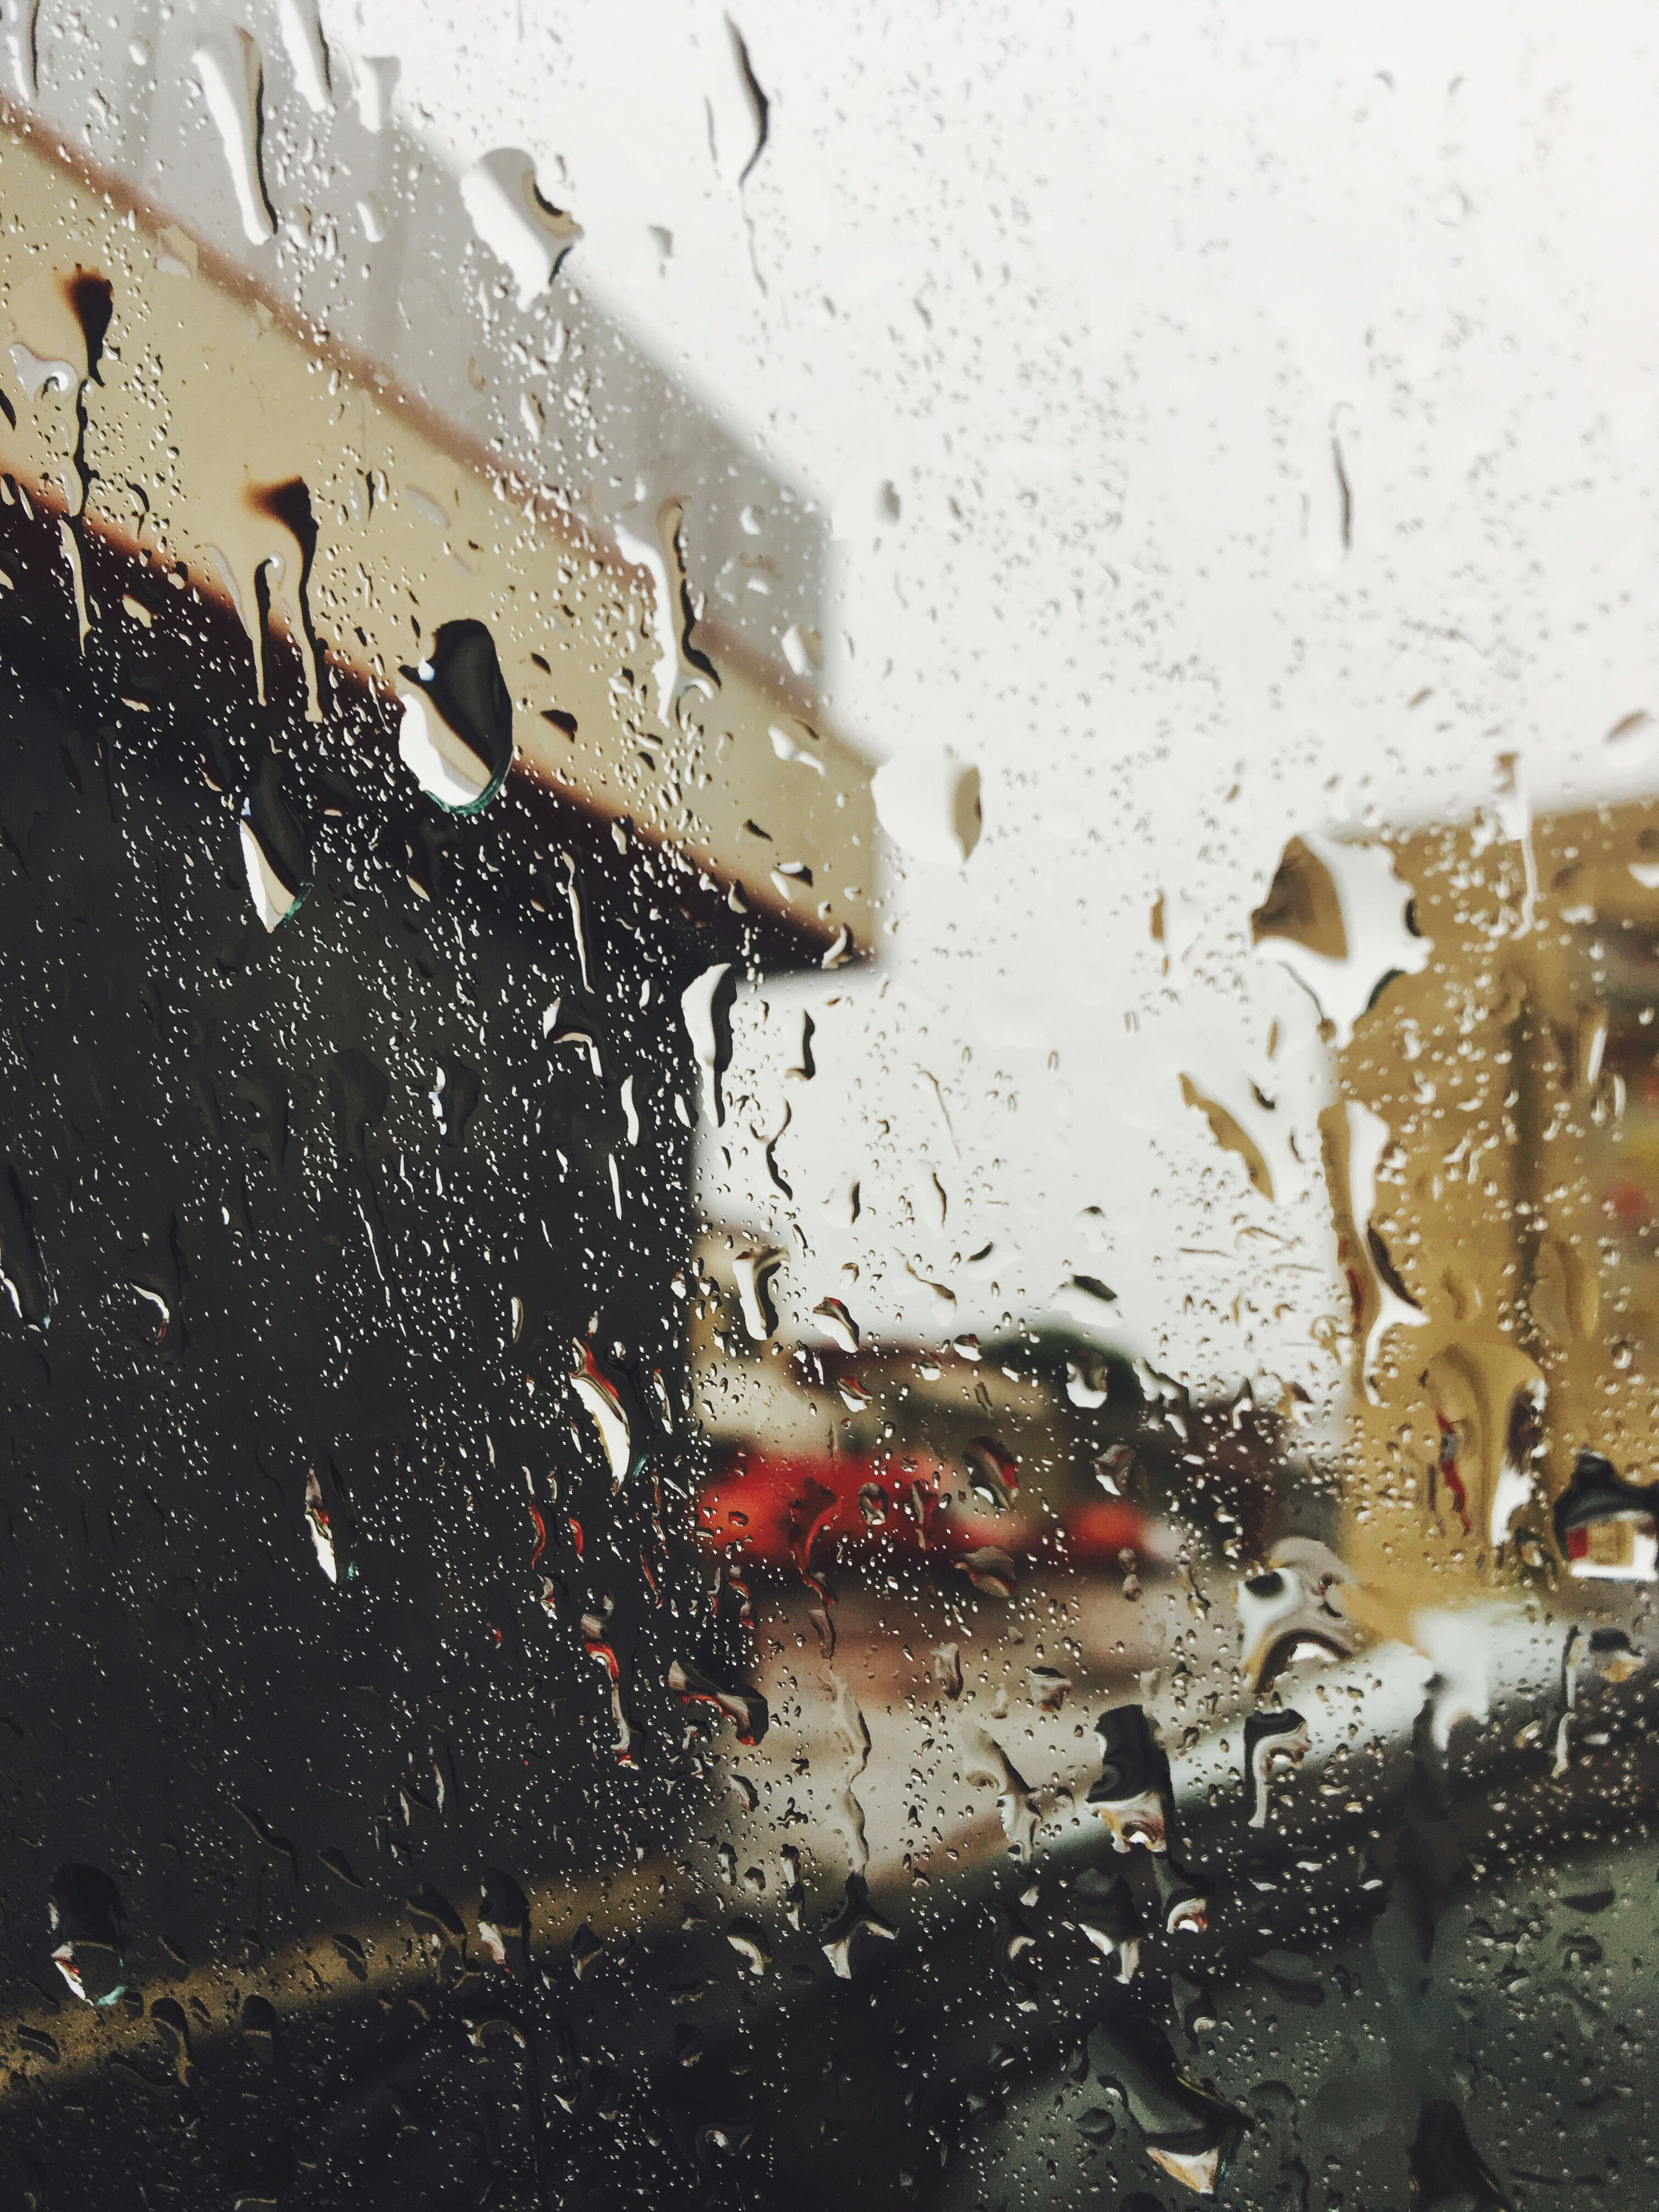 drop, car, glass - material, wet, window, vehicle interior, land vehicle, water, car interior, rain, rainy season, mode of transport, windshield, transportation, raindrop, car wash, indoors, no people, cleaning, day, close-up